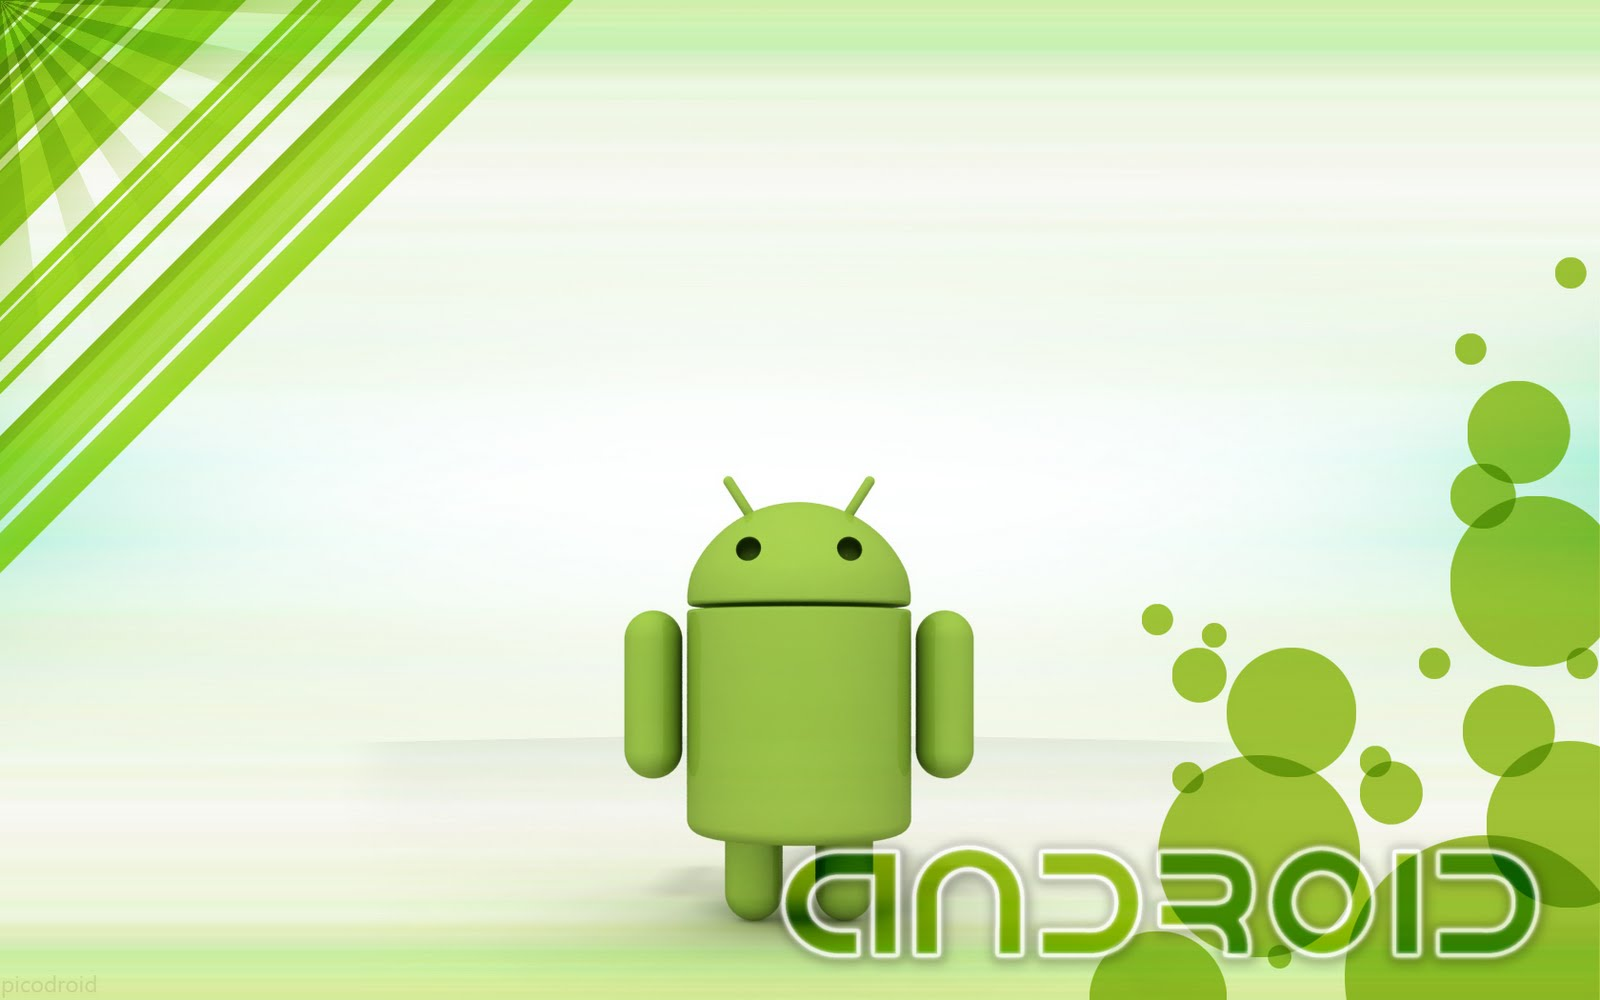 Awesome Wallpapers For Android: Free Wallpapers Pictures: Awesome Android Wallpapers